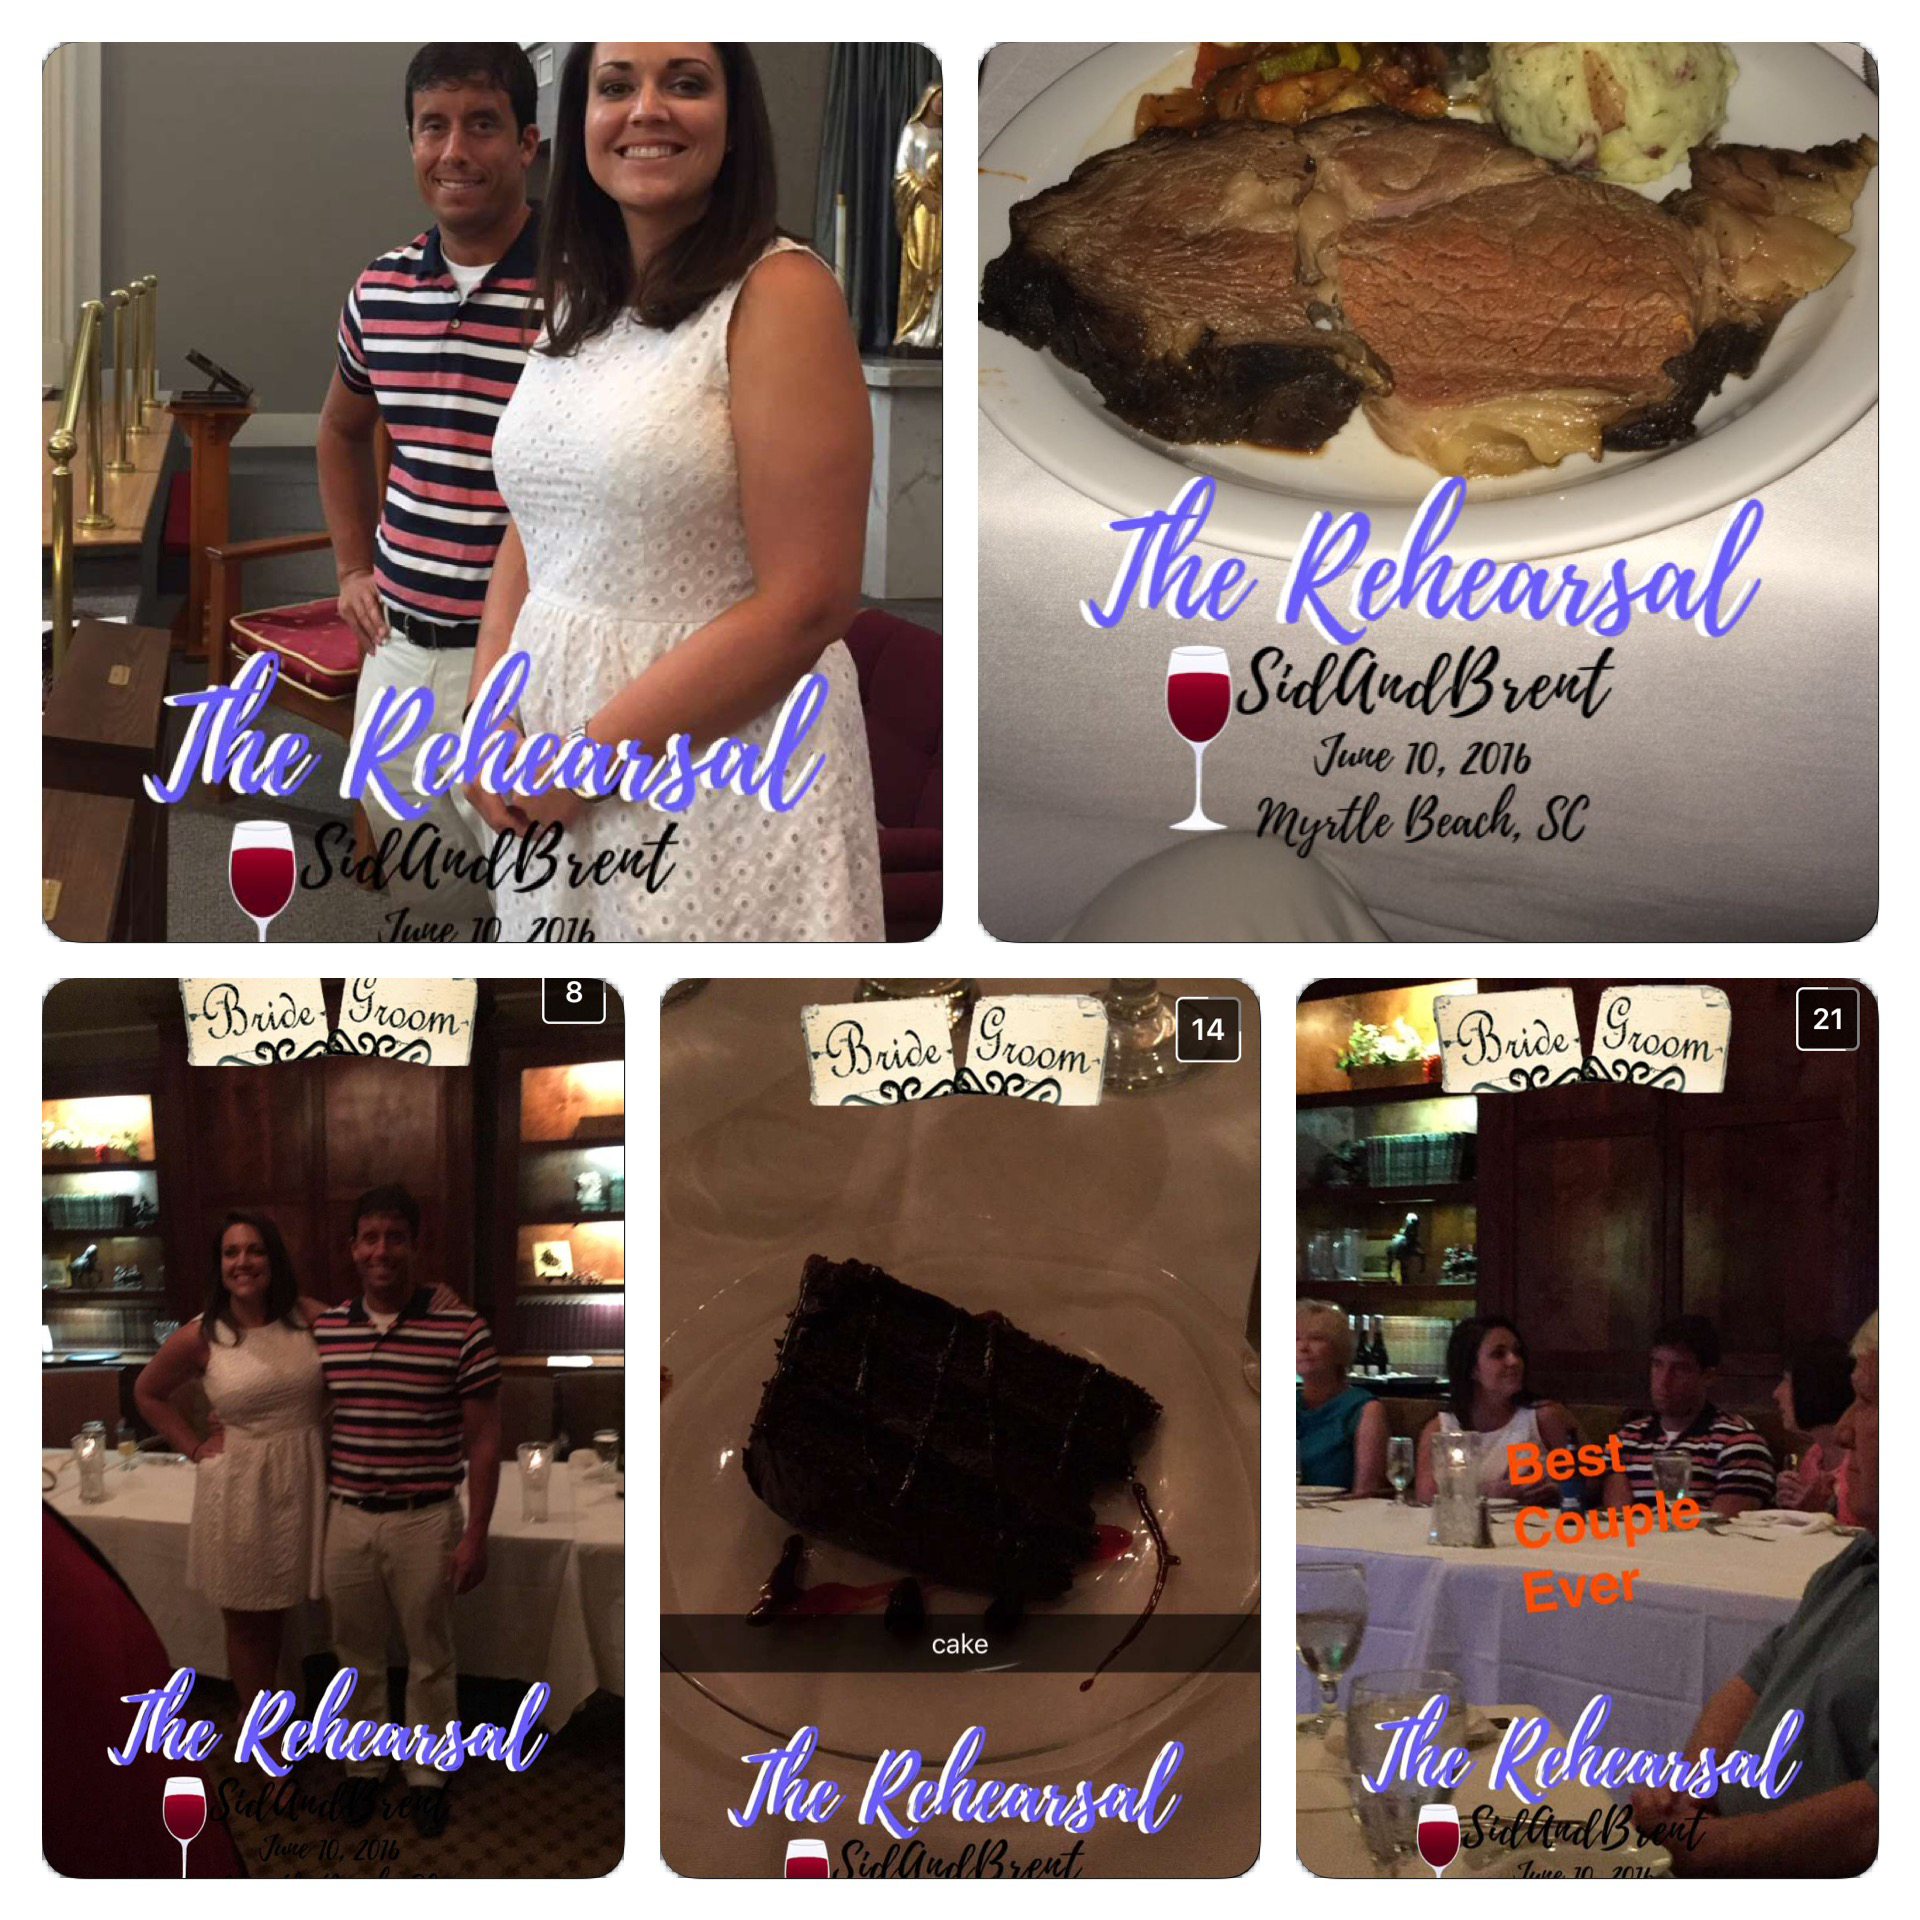 A look at how different people used our geofilter at the rehearsal dinner.